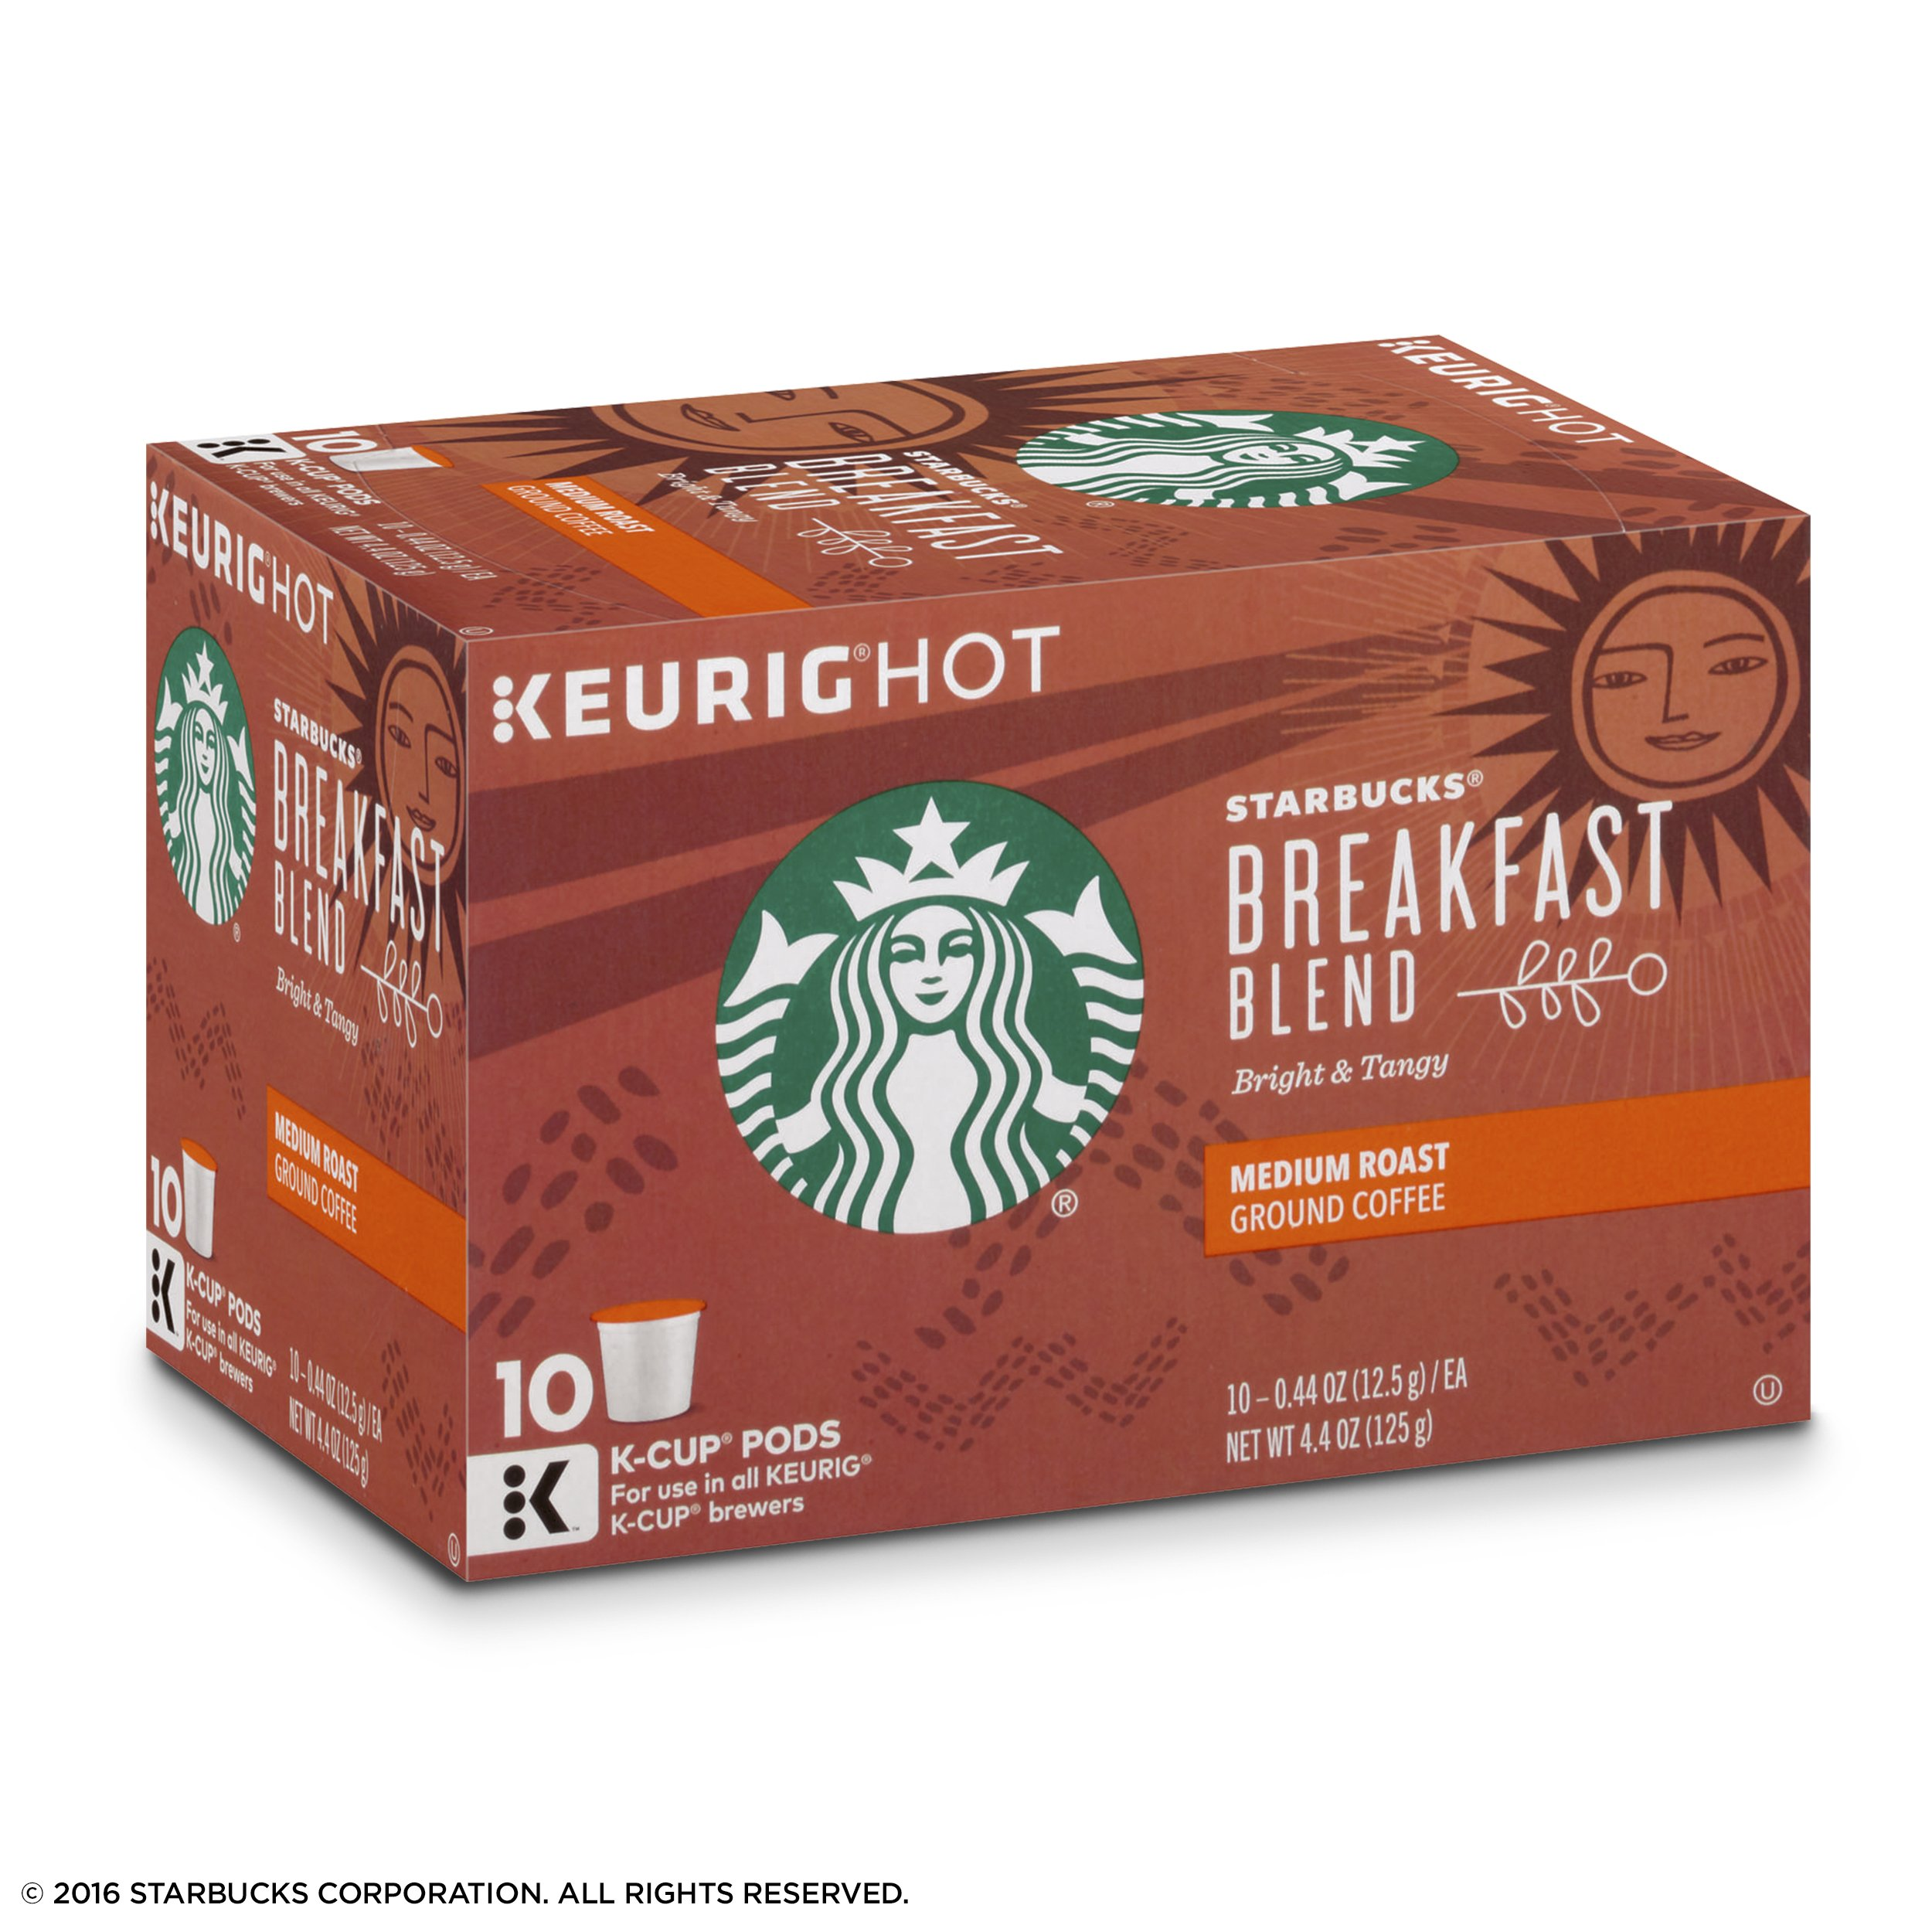 Starbucks Breakfast Blend Medium Roast Single Cup Coffee for Keurig Brewers, 6 Boxes of 10 (60 Total K-Cup pods) by Starbucks (Image #3)